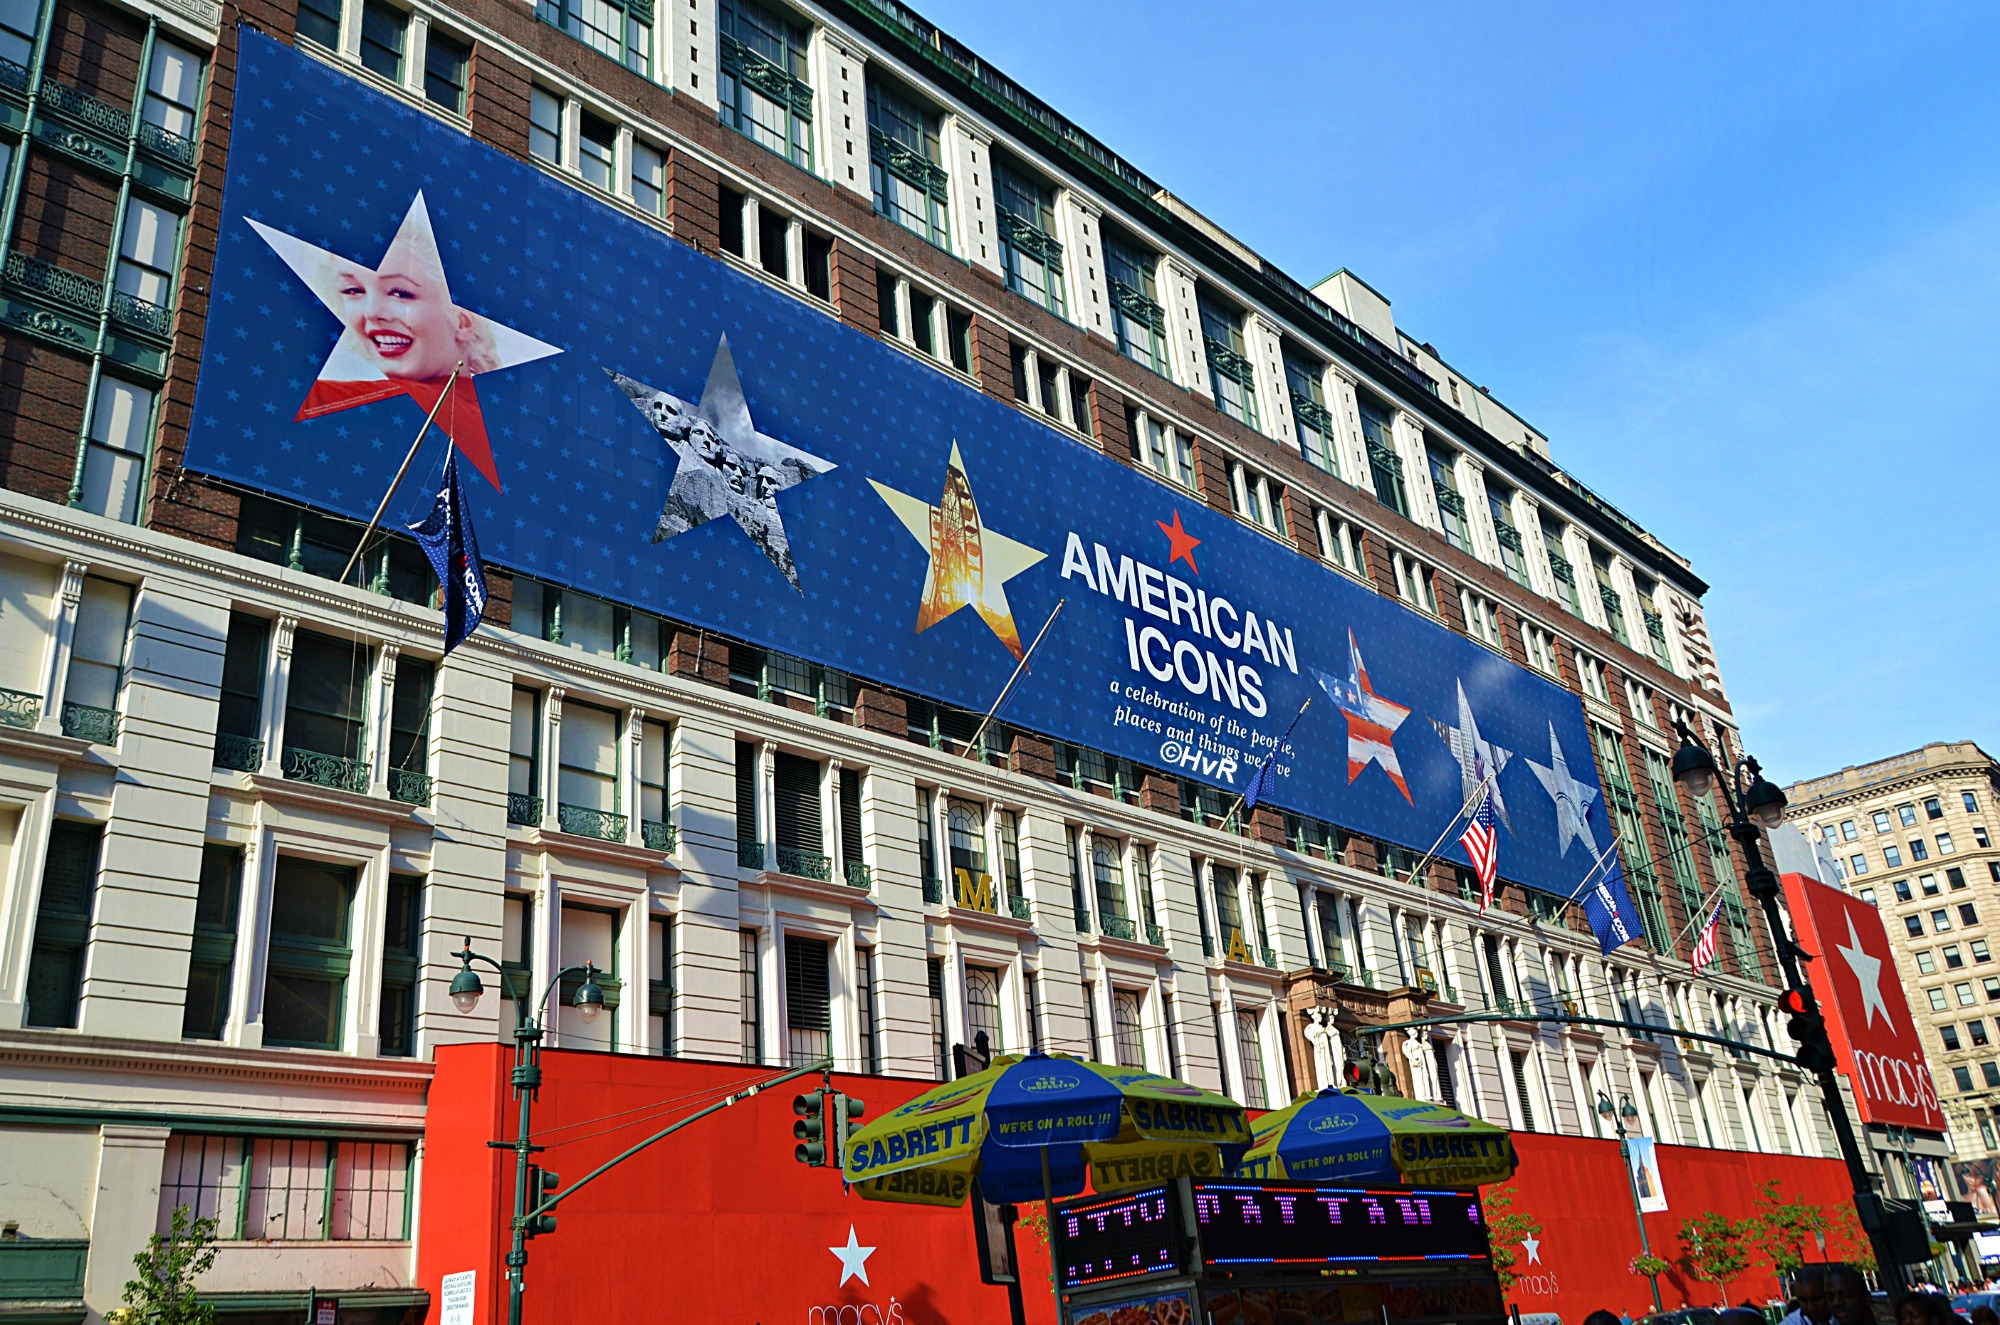 Macy's flagship department store at Herald Square NYC